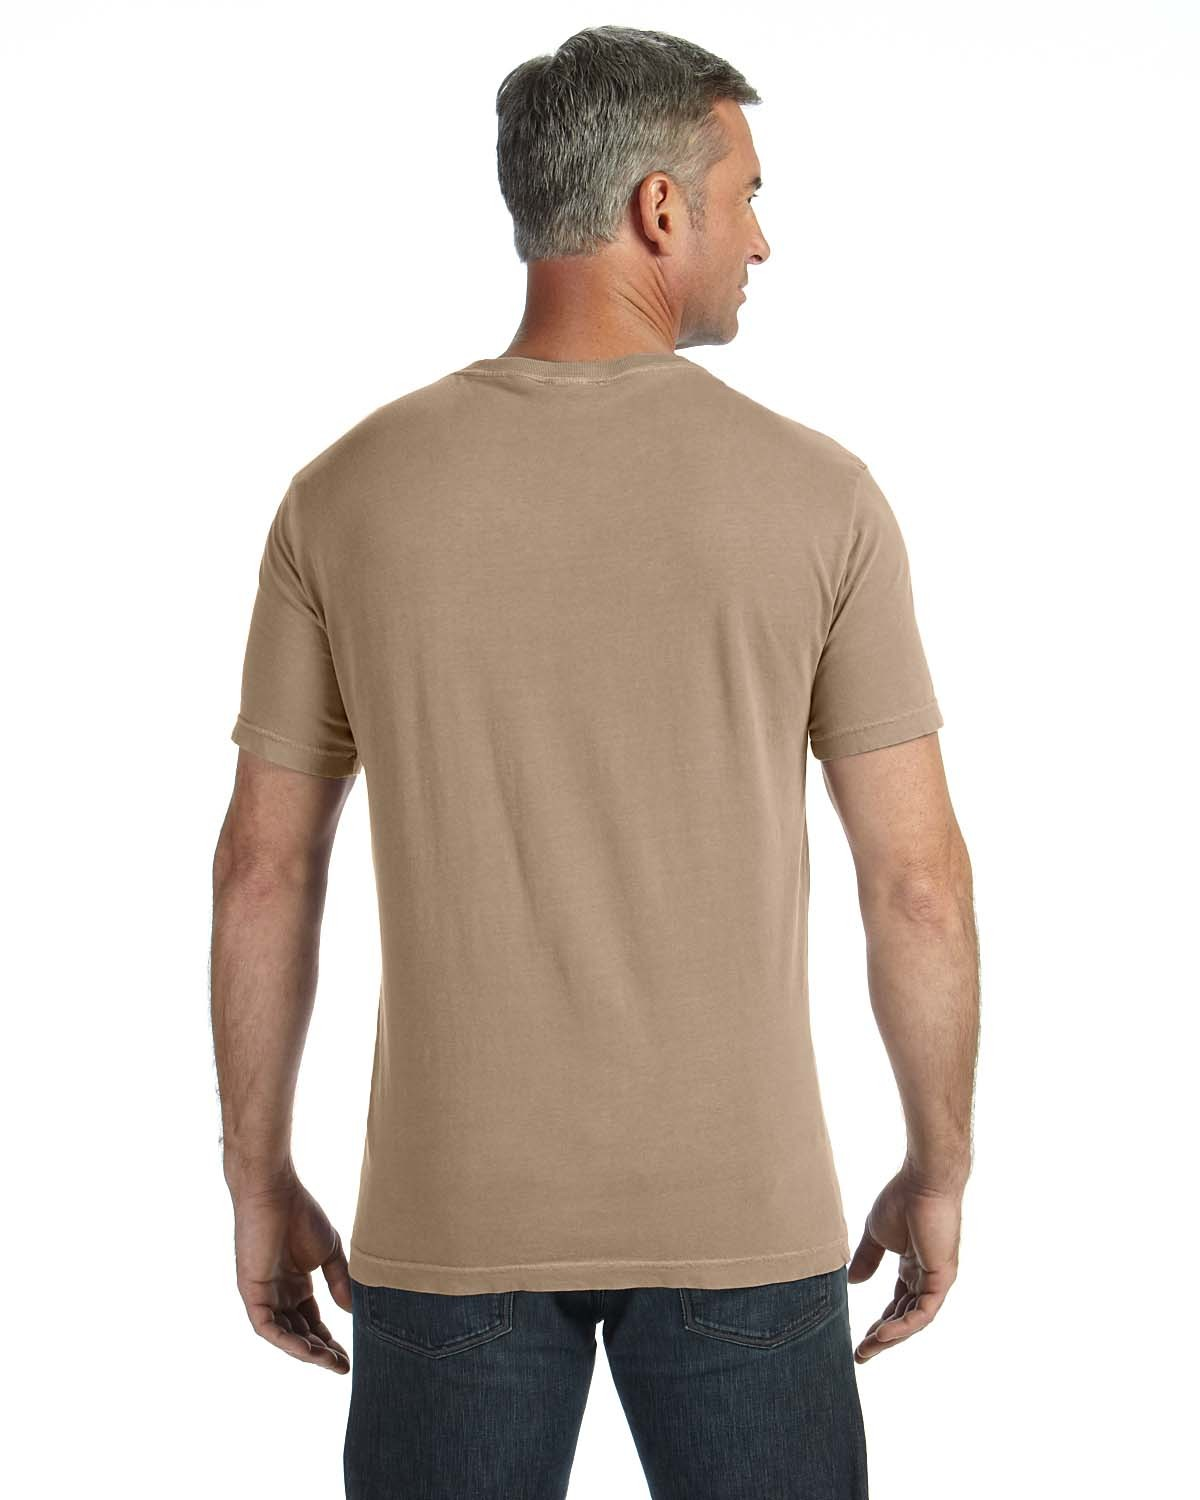 C4099 Comfort Colors KHAKI